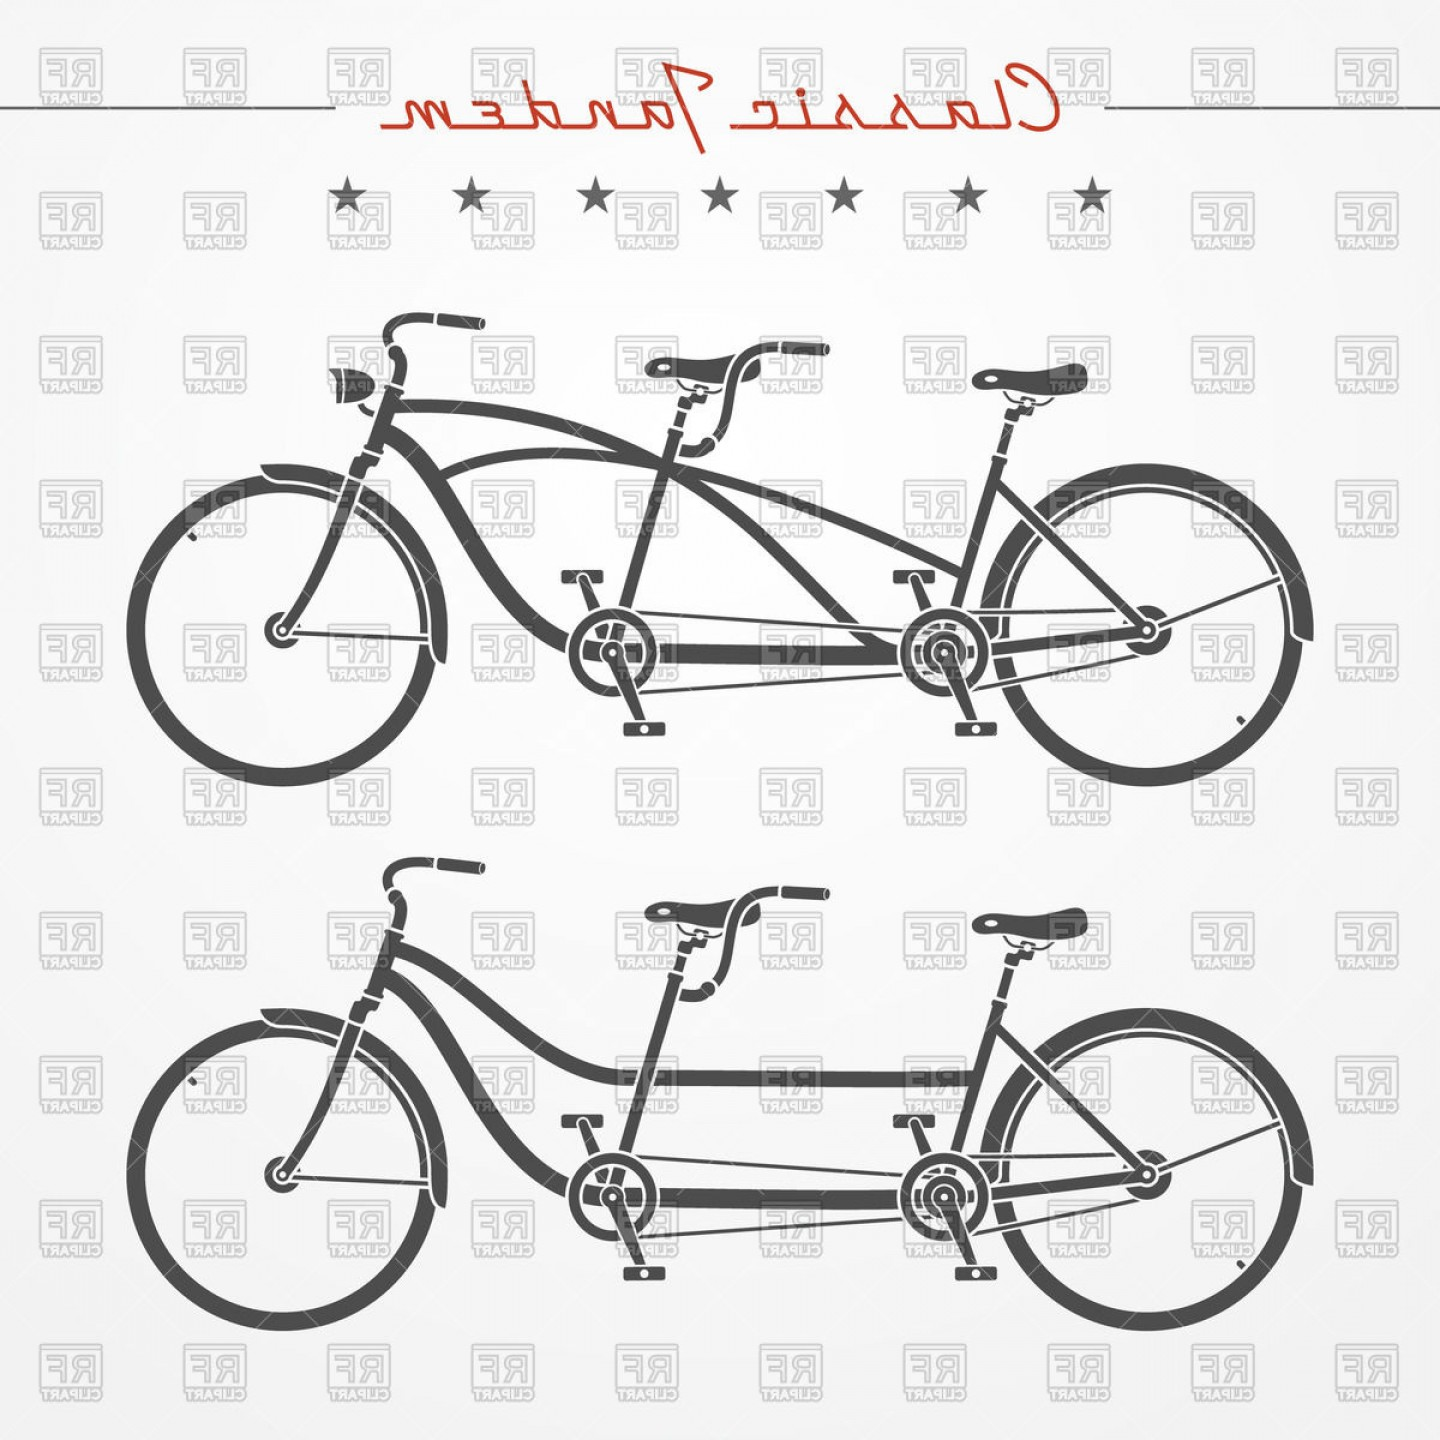 Bicycle Crank Vector Of Artwork: Lassic Tandem Bicycles Vector Clipart